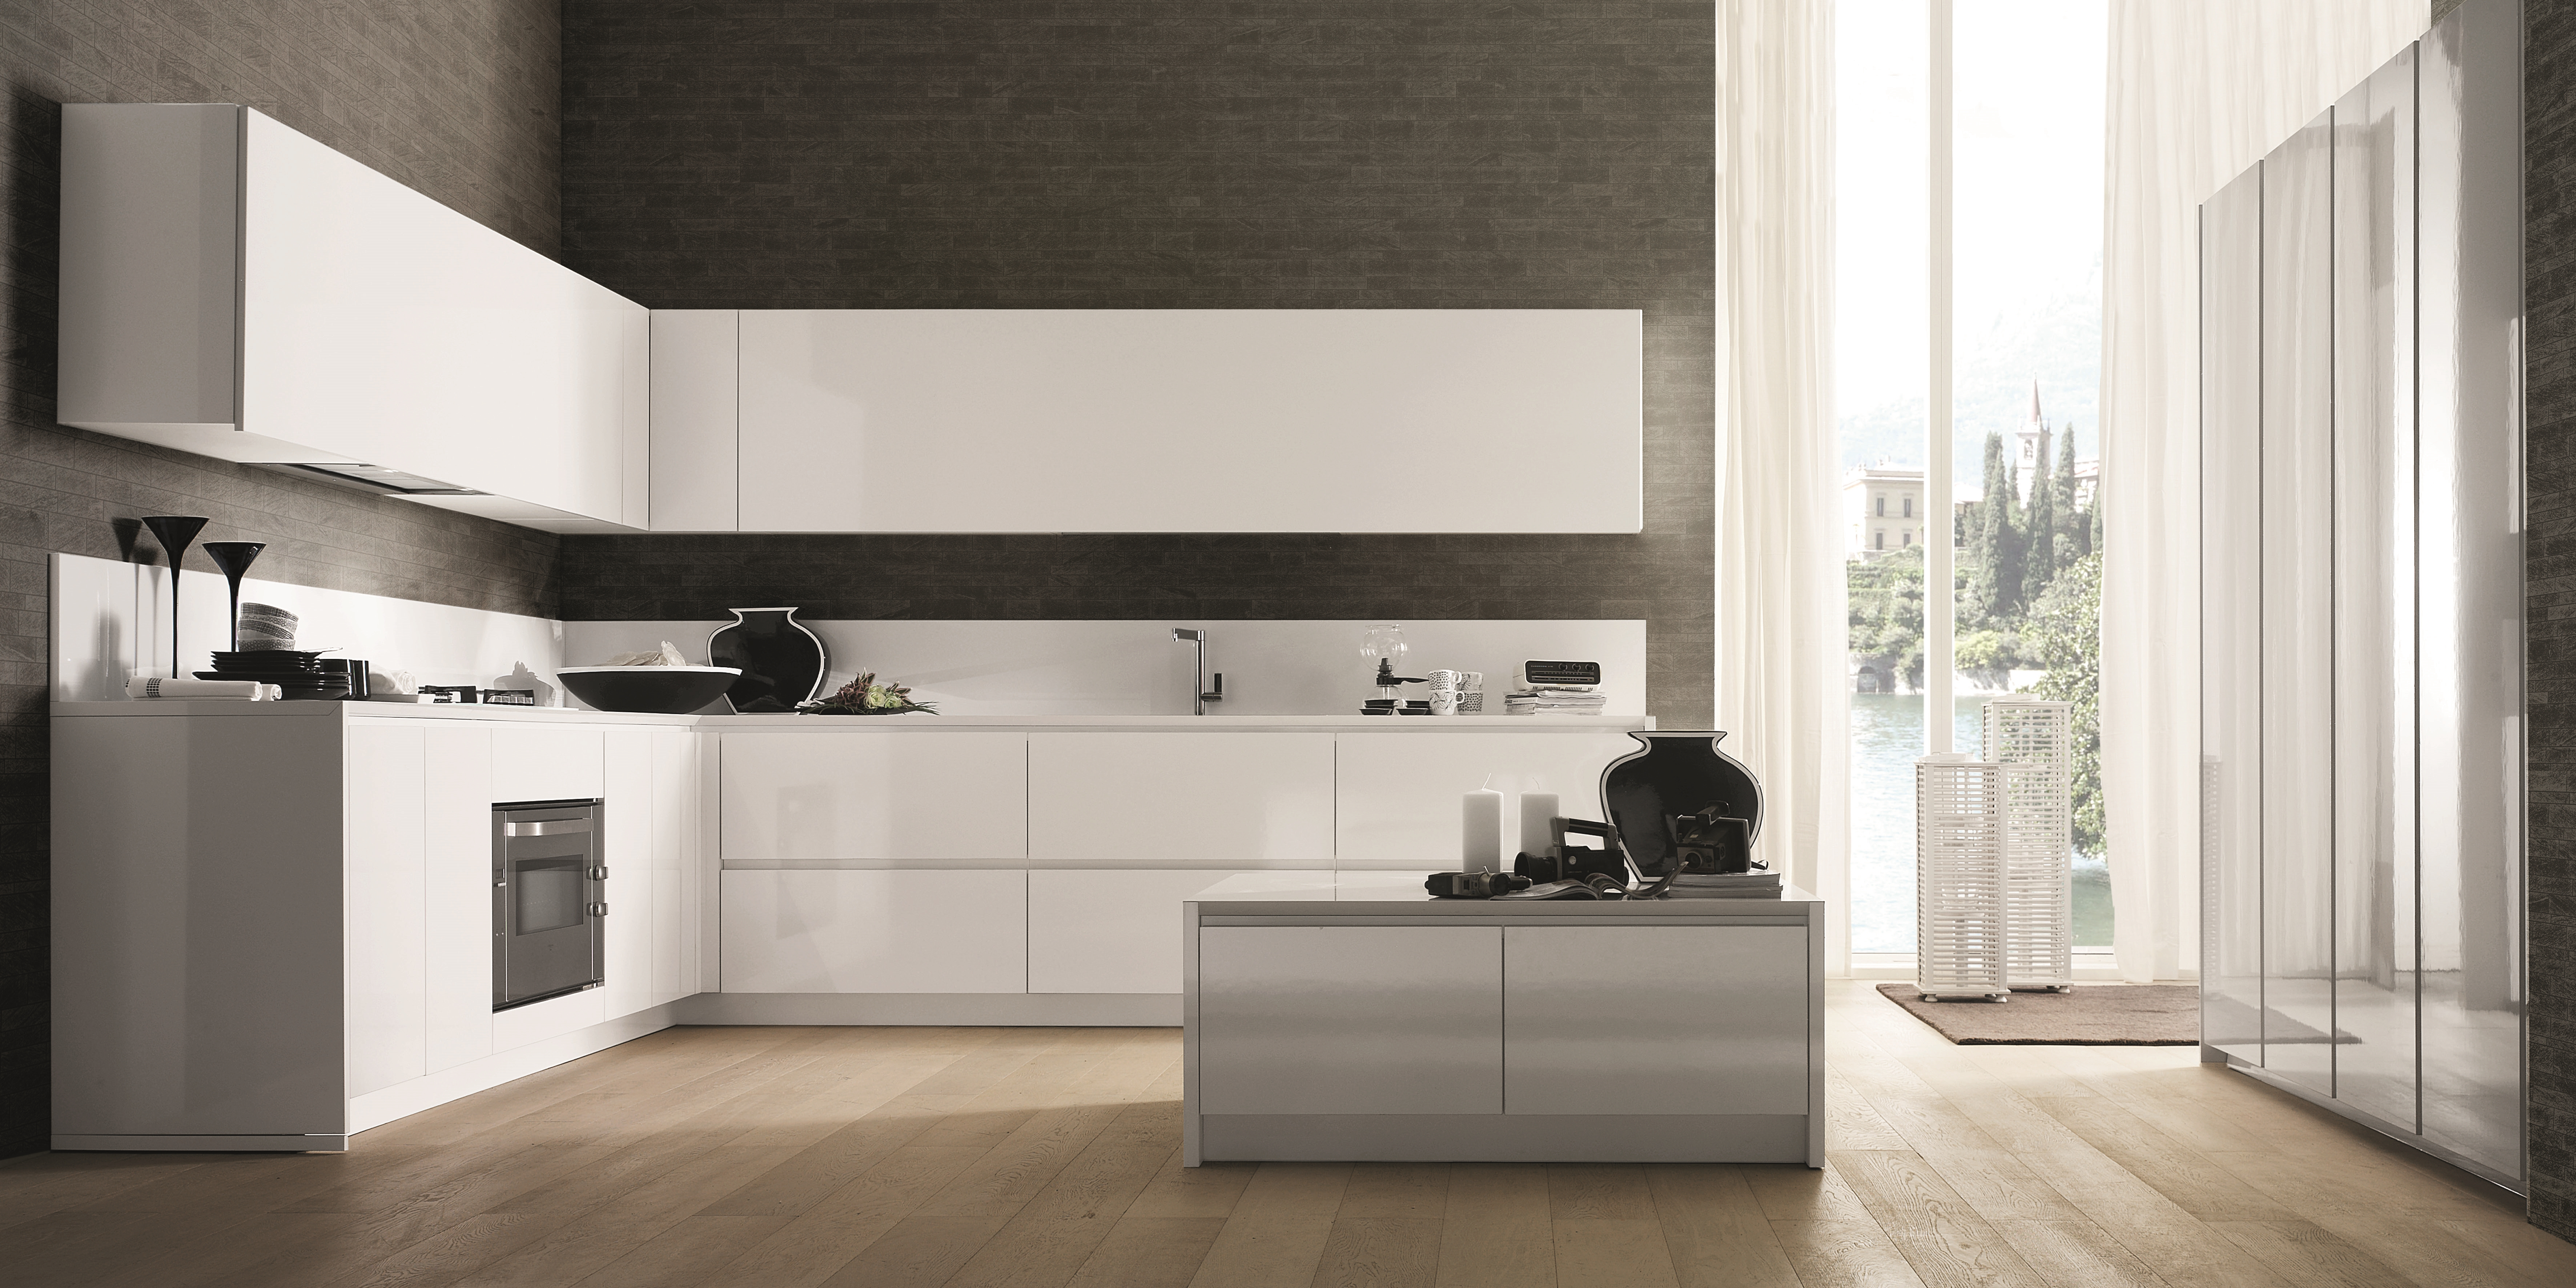 Best cucine del tongo rivenditori photos acrylicgiftware - Cucine del tongo catalogo ...